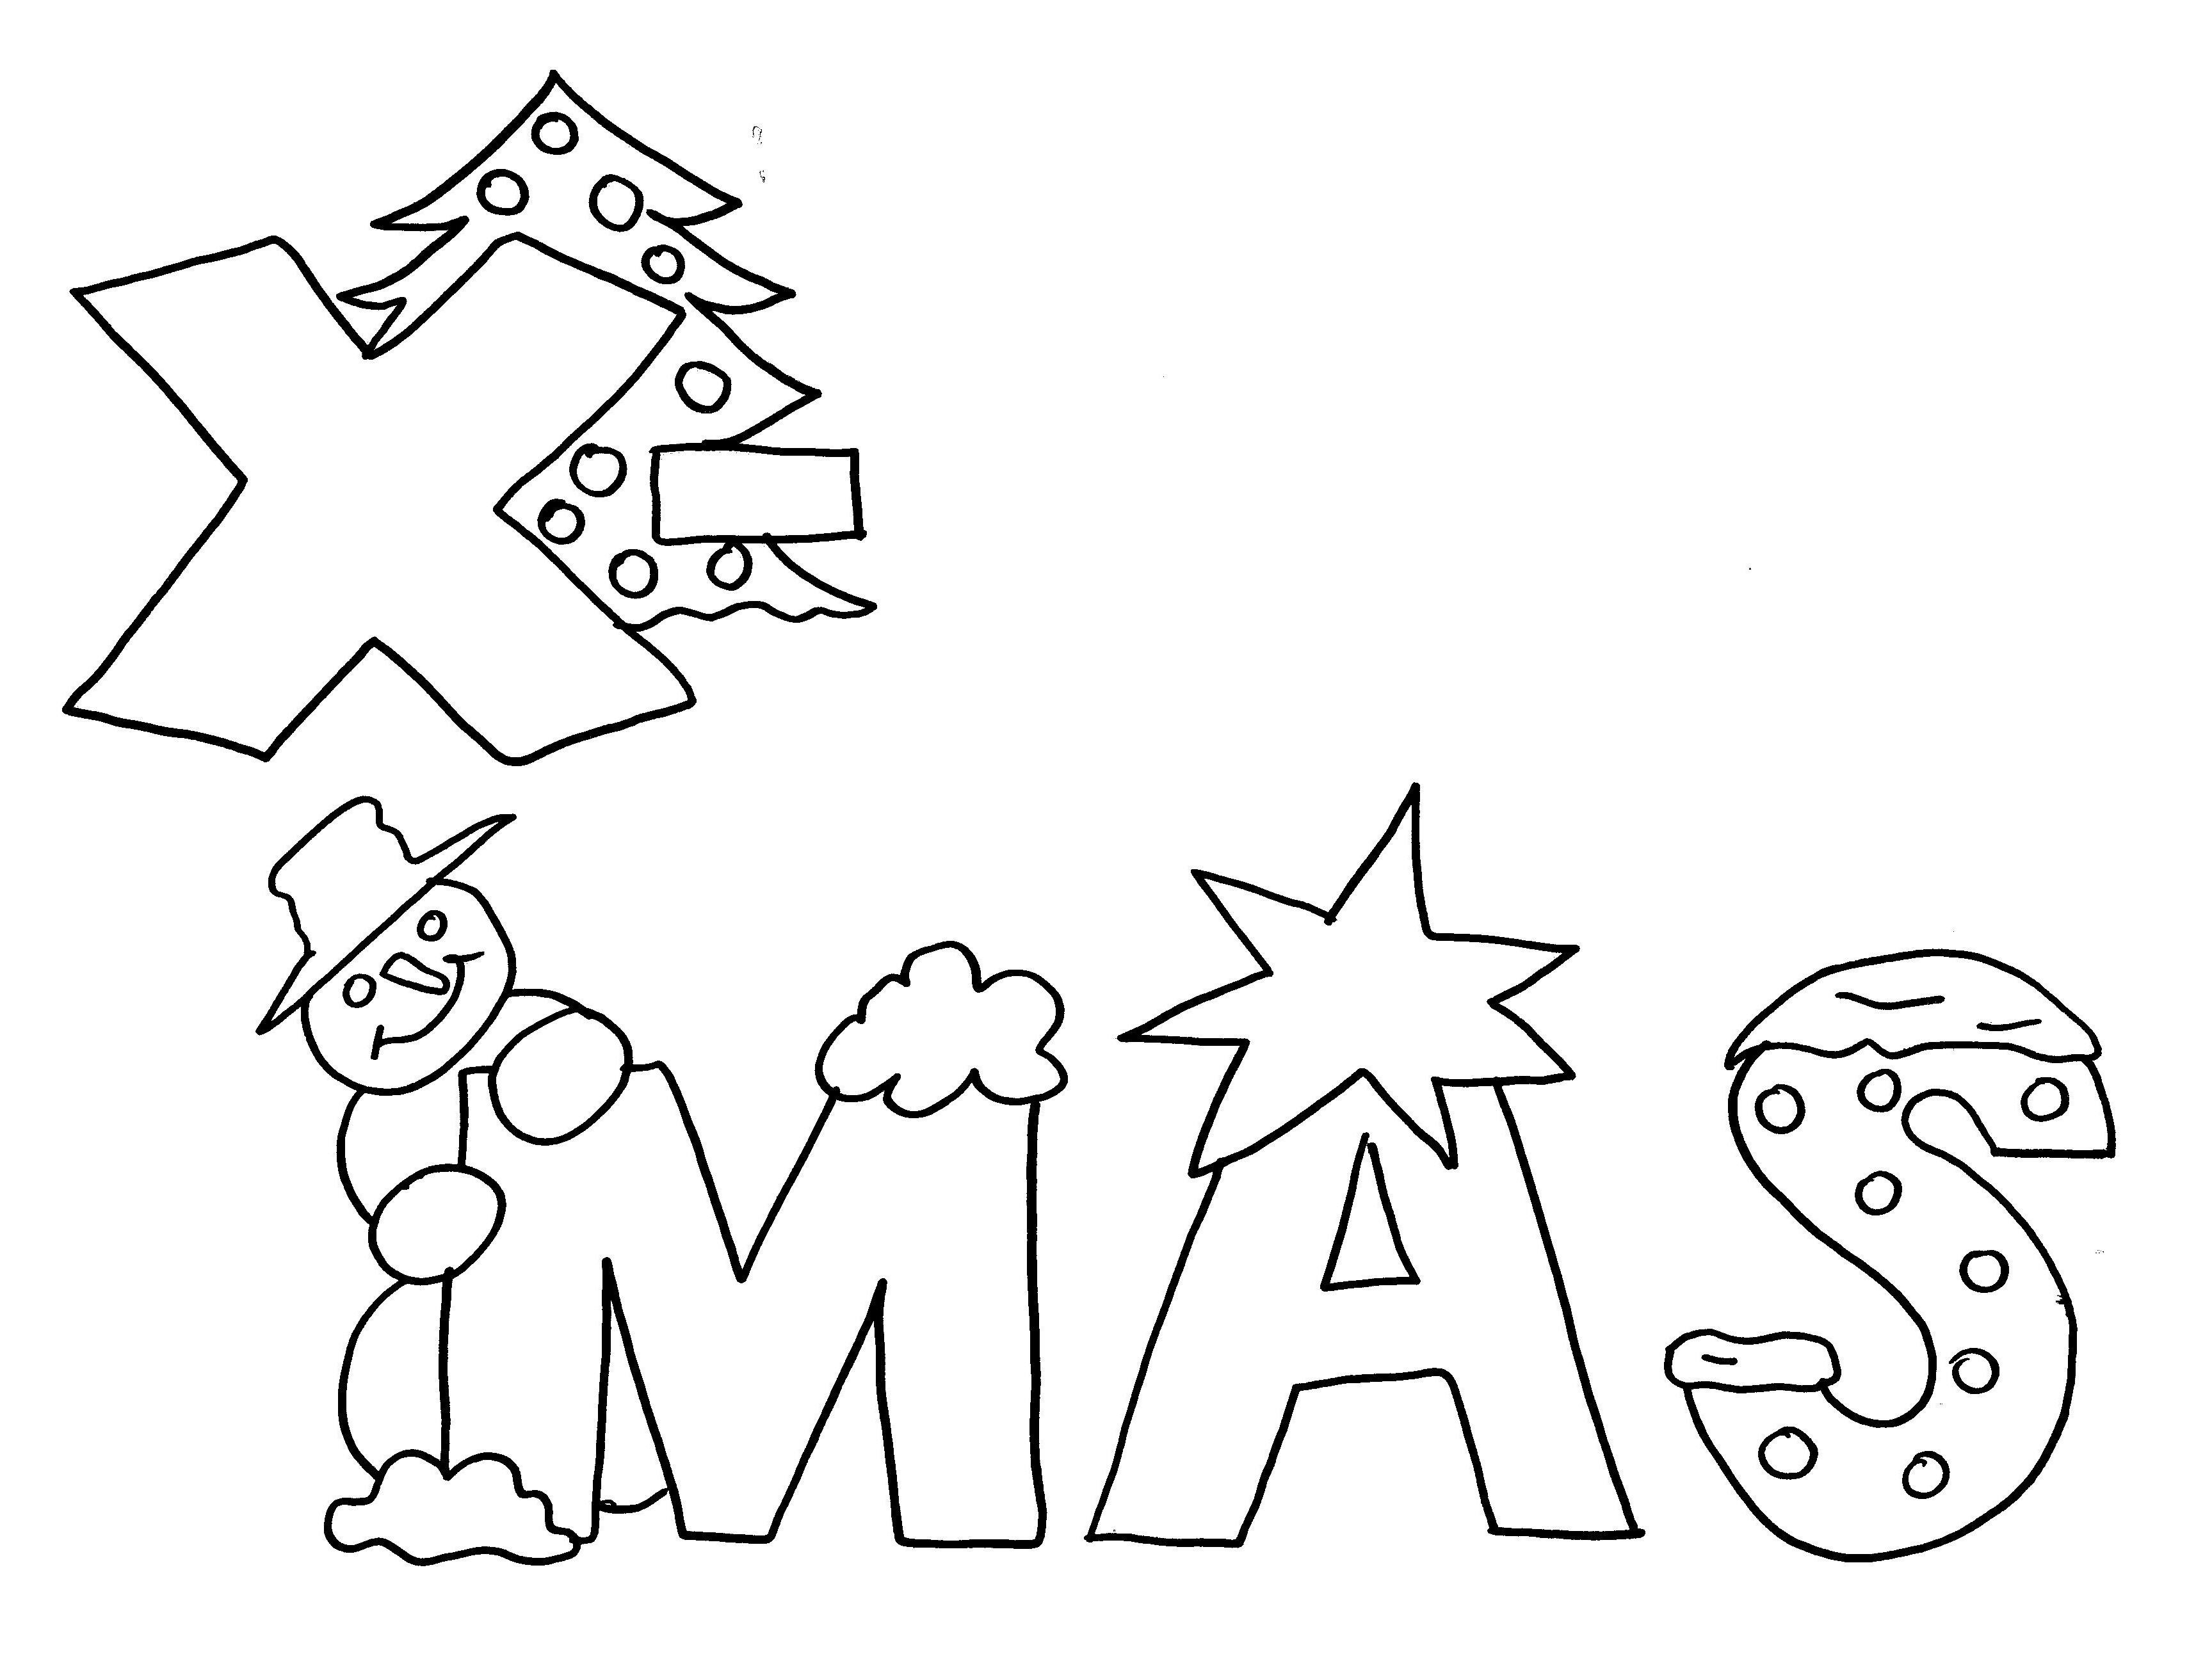 Modele De Decoration De Table De Noel Coloriage De Noël Merry Christmas Trucs Et Deco